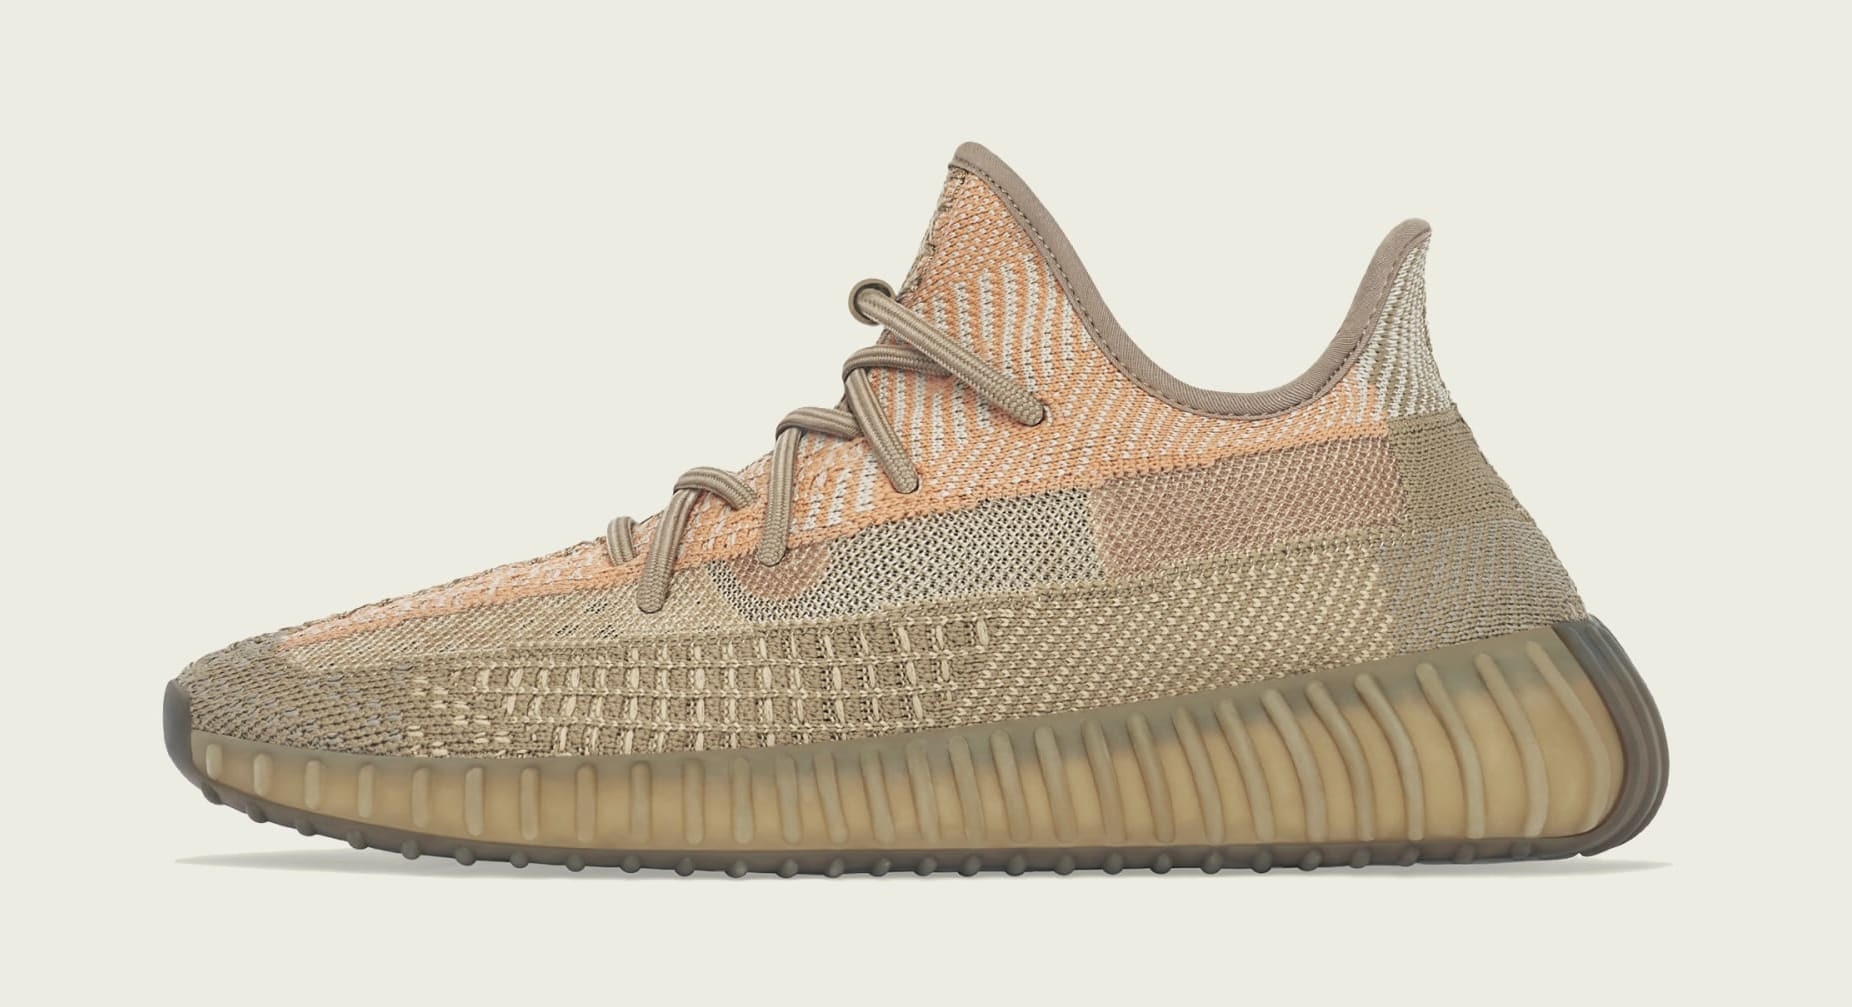 Adidas Yeezy Boost 350 V2 'Sand Taupe' FZ5240 Lateral